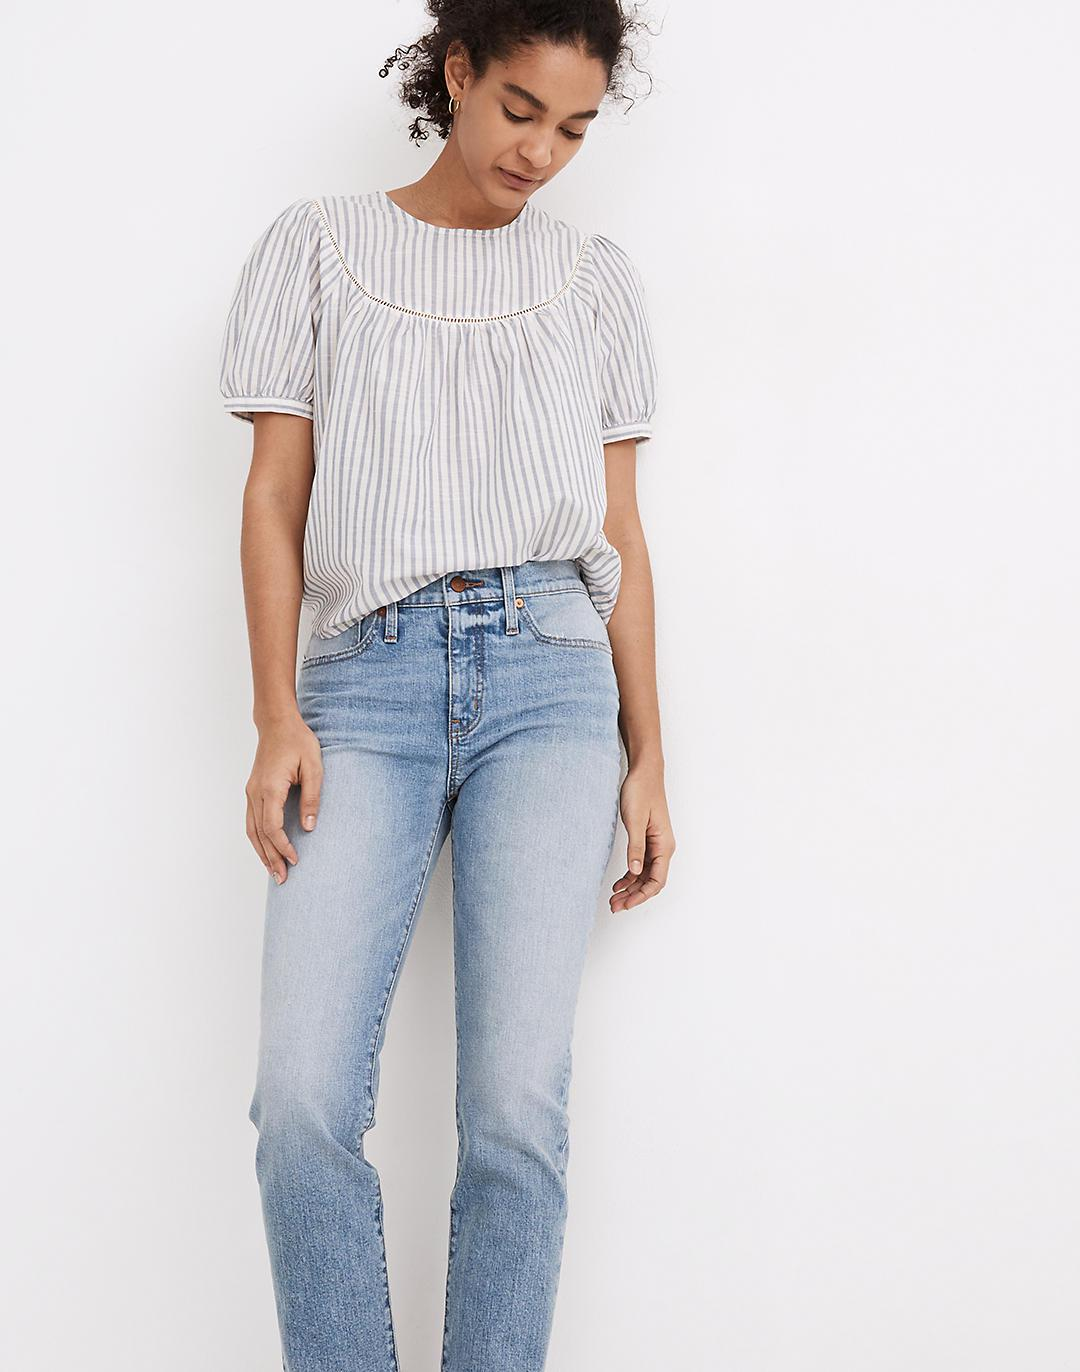 Tomboy Straight Jeans in Glover Wash 1